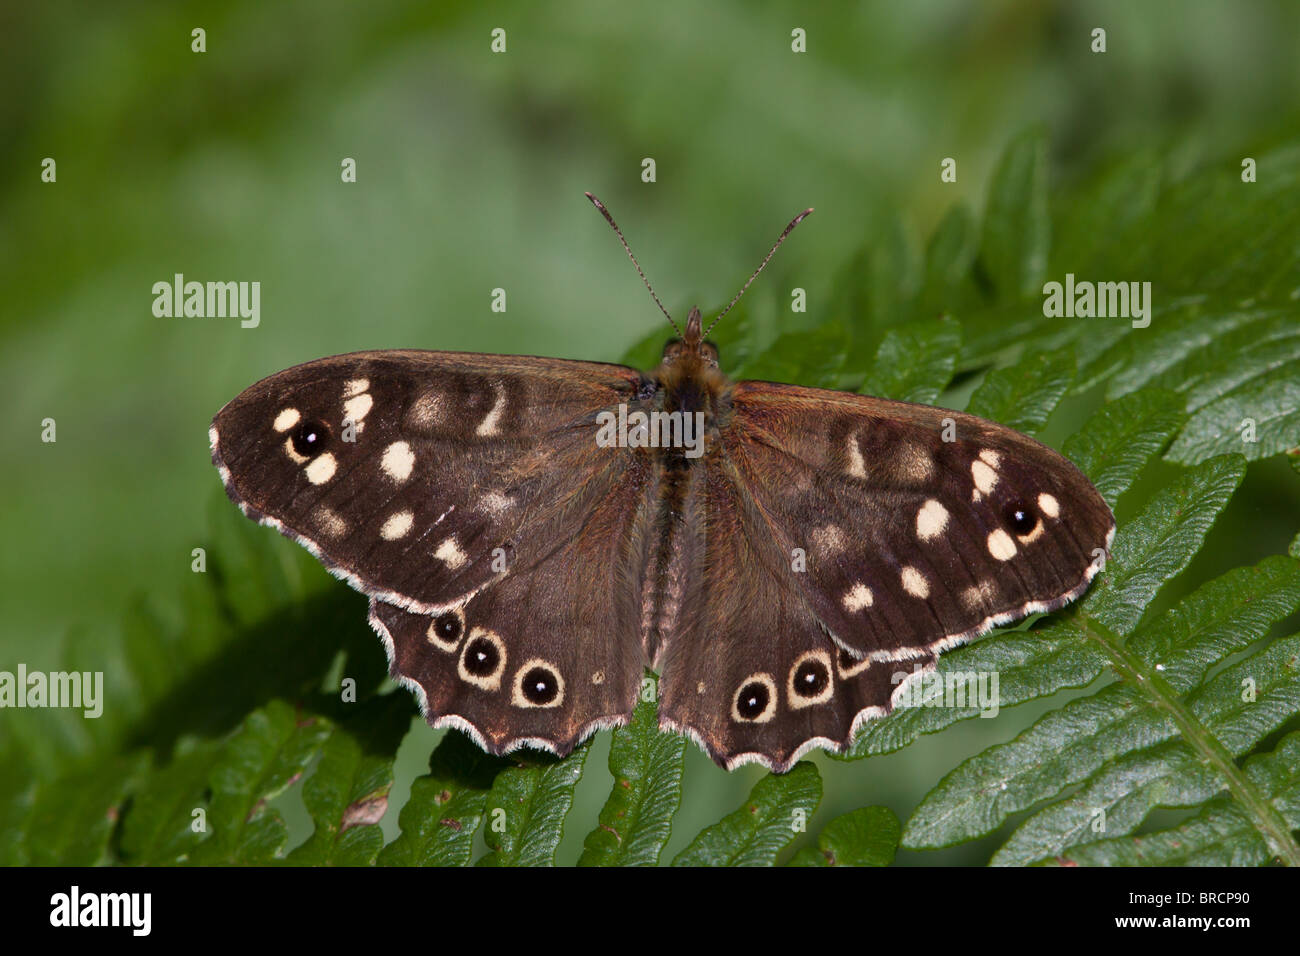 Speckled Wood butterfly, Pararge aegeria - Stock Image